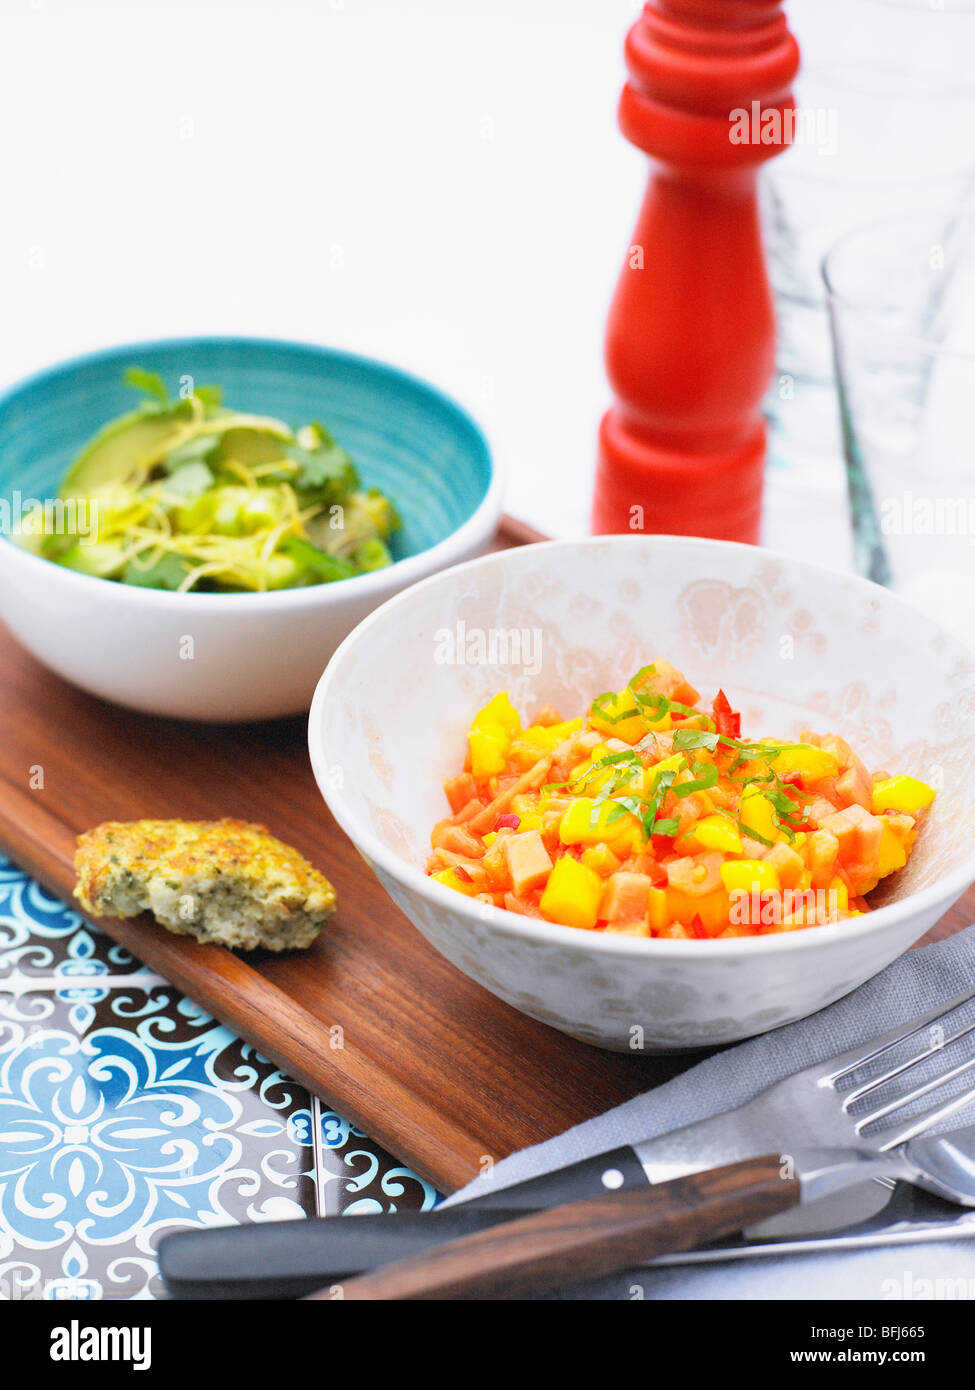 Two different salads, Sweden. - Stock Image